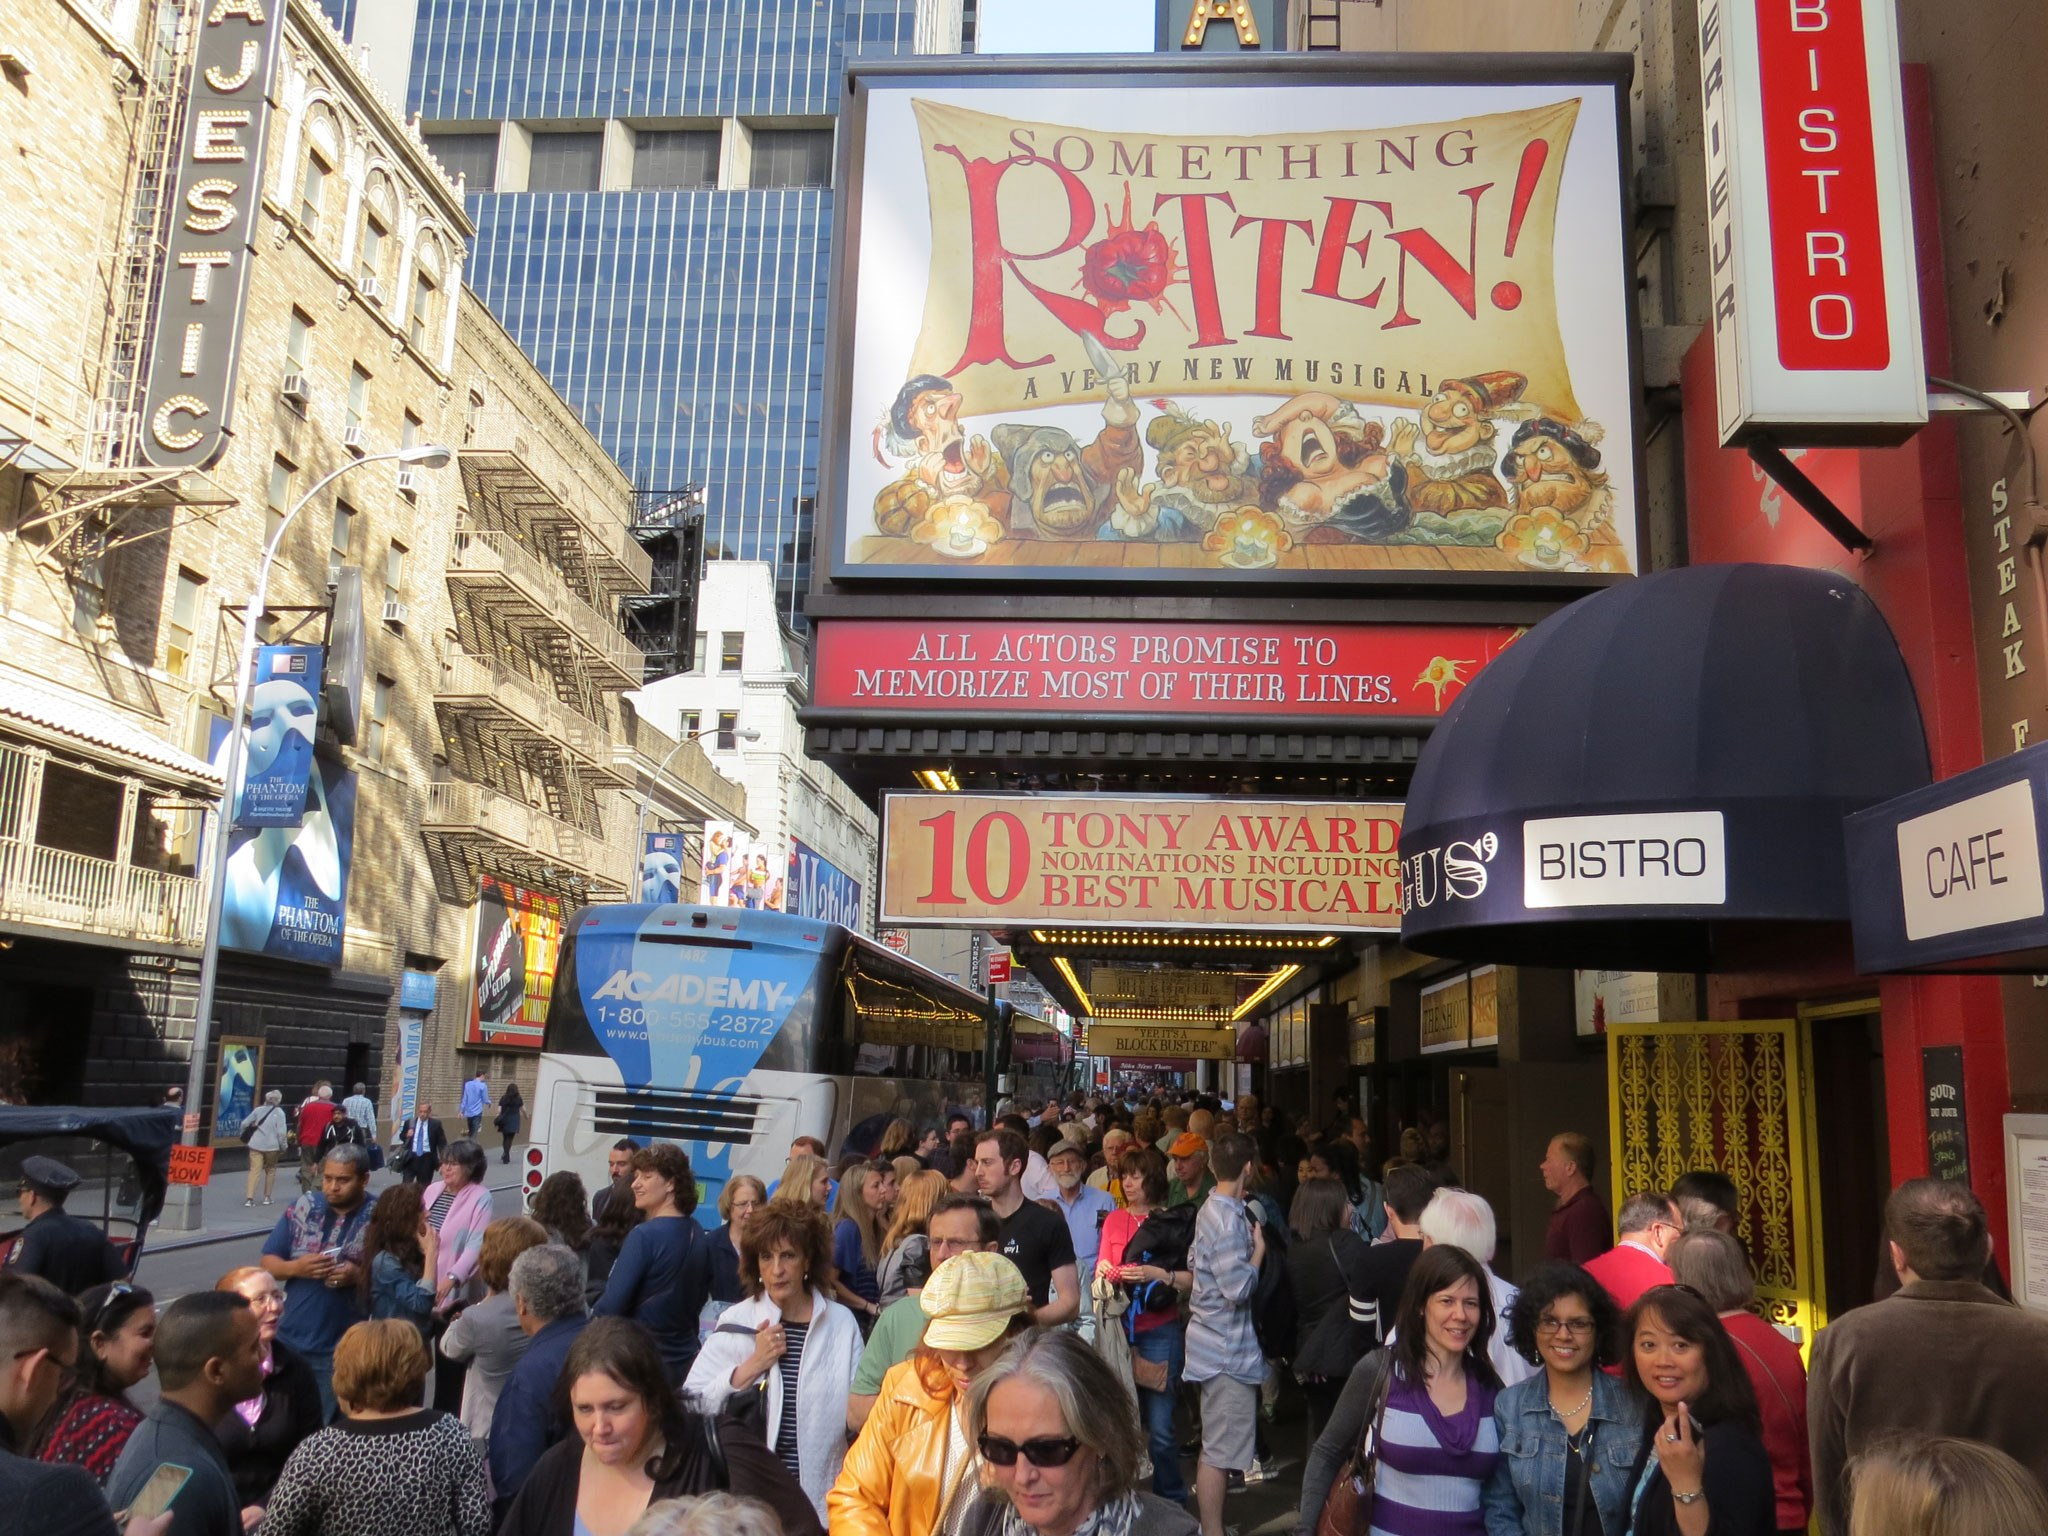 Something Rotten! Marquee